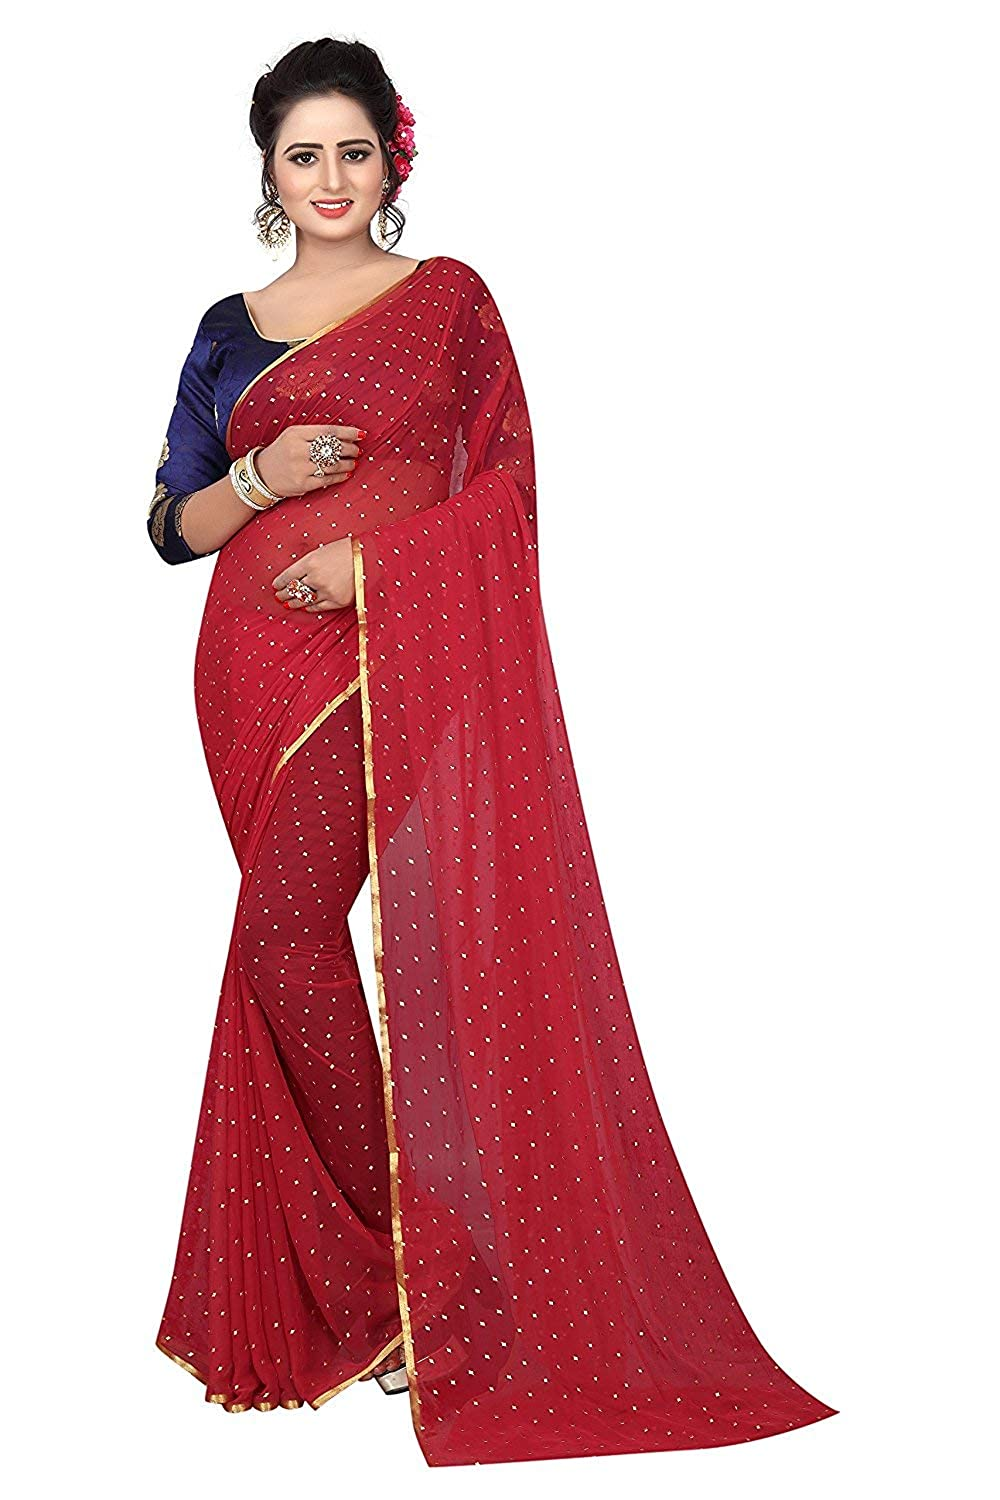 0971bbb8220d3 Krishna Adv Women s Plain Daily Wear Chiffon Saree Gulab (red   gold)   Amazon.in  Clothing   Accessories